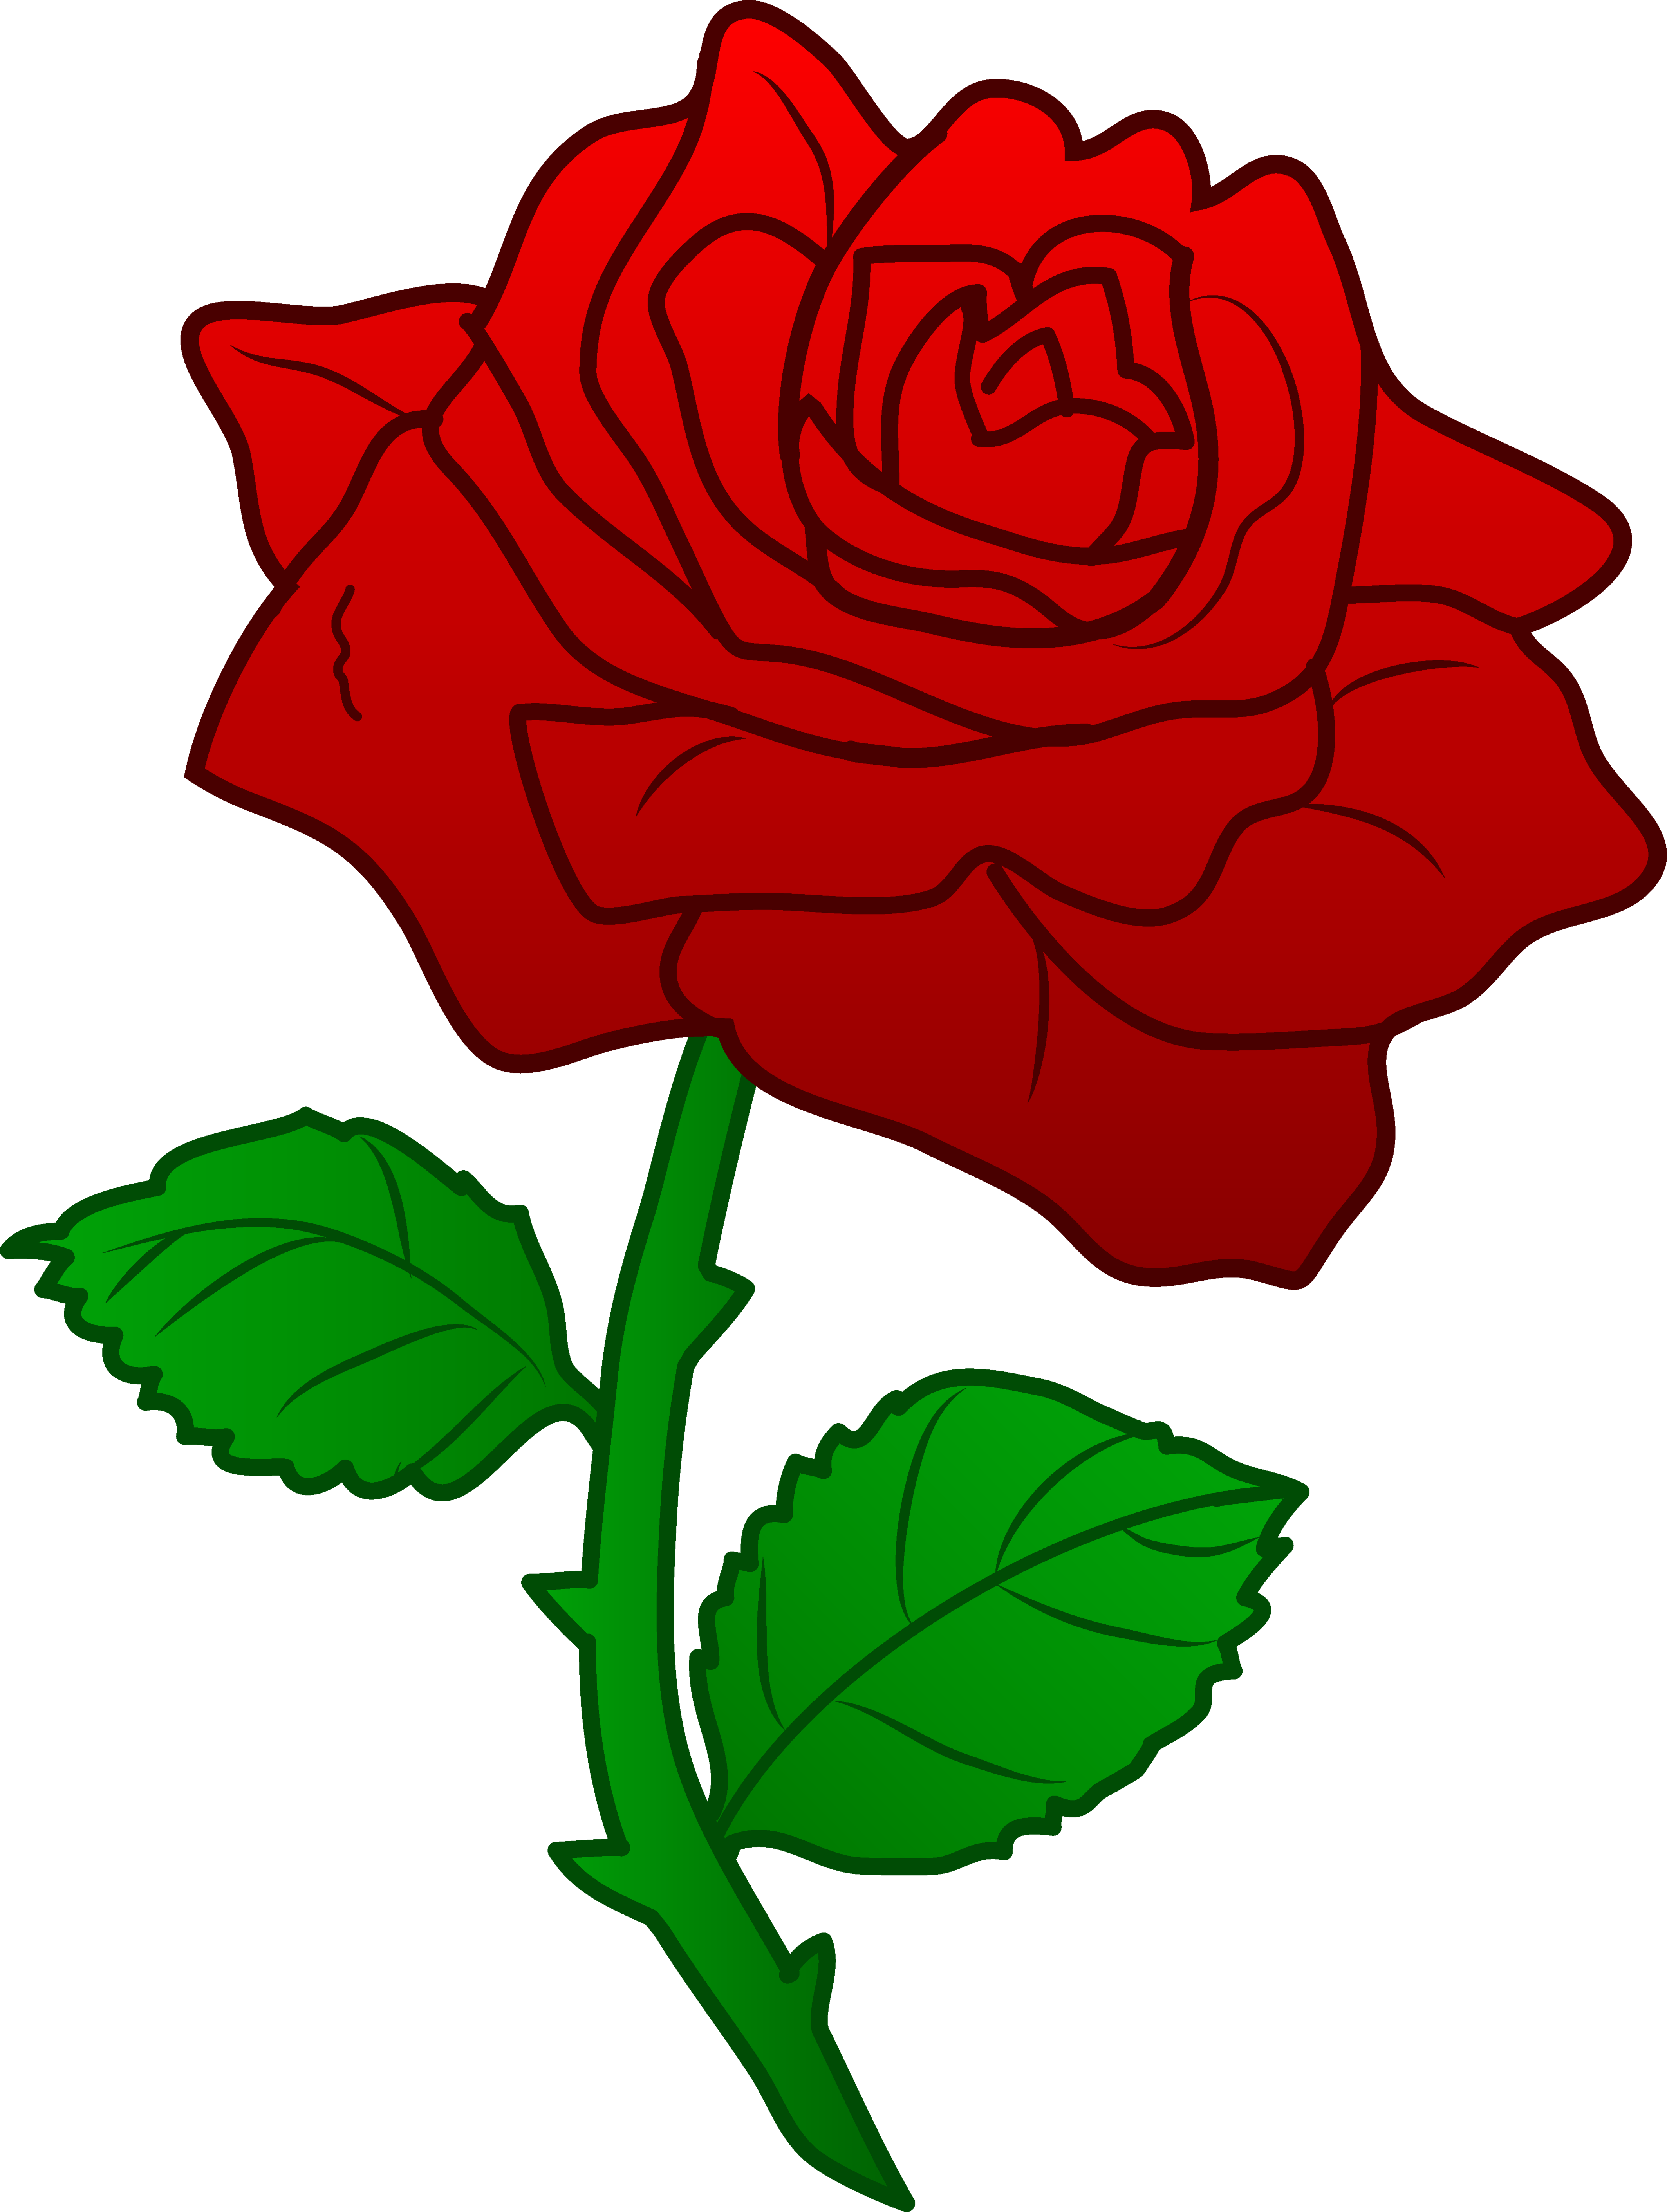 White Rose clipart simple #12